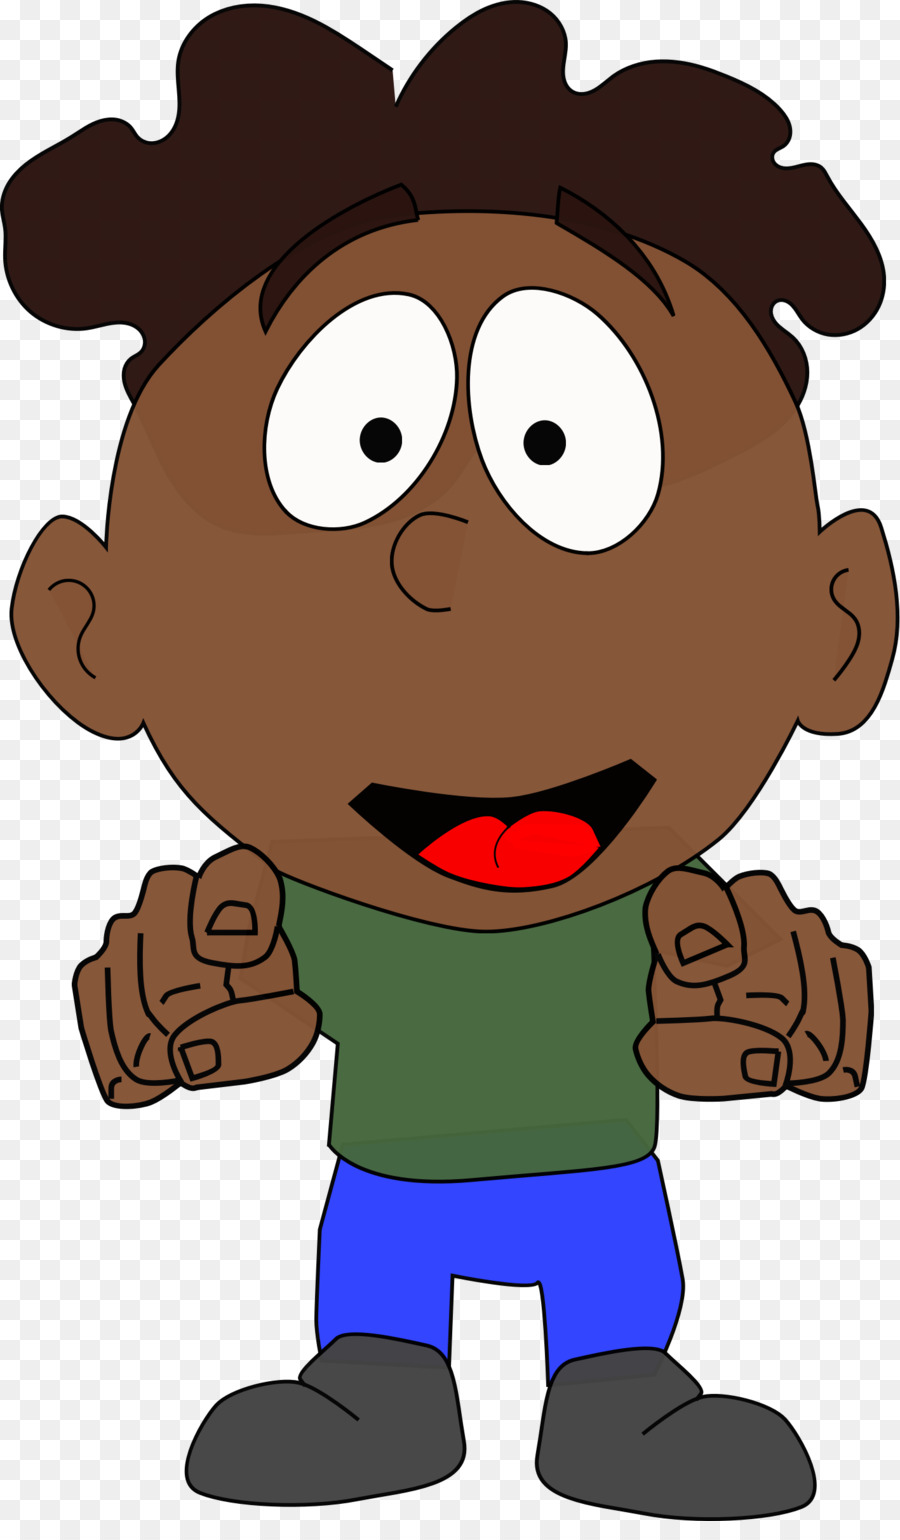 African wide nose clipart clipart images gallery for free.